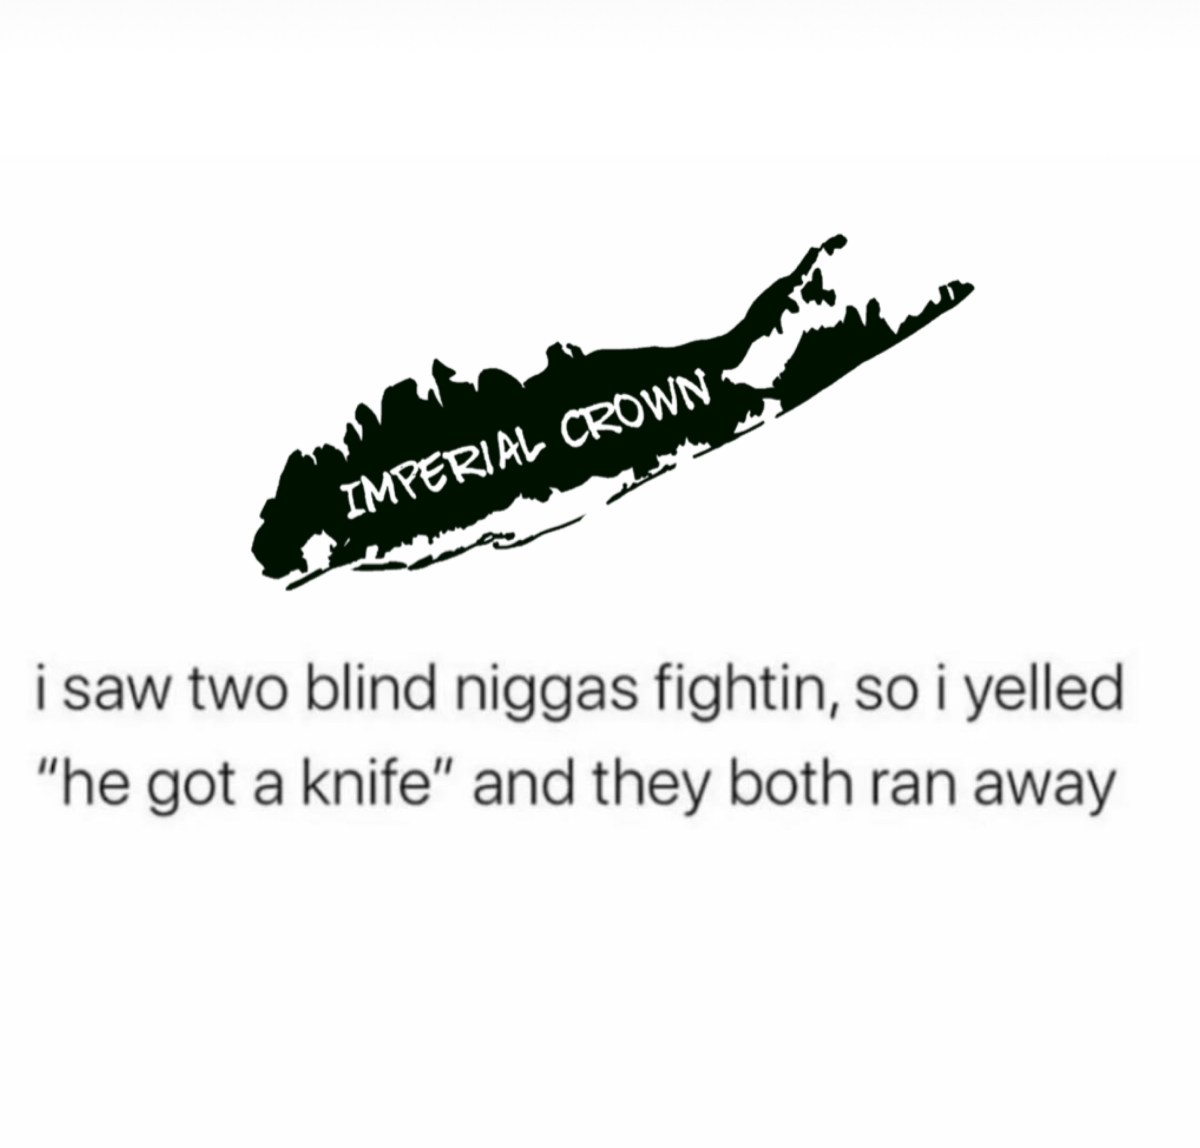 """I saw two blind niggas fighting, so I yelled """" he got a knife"""" and they both ran away"""